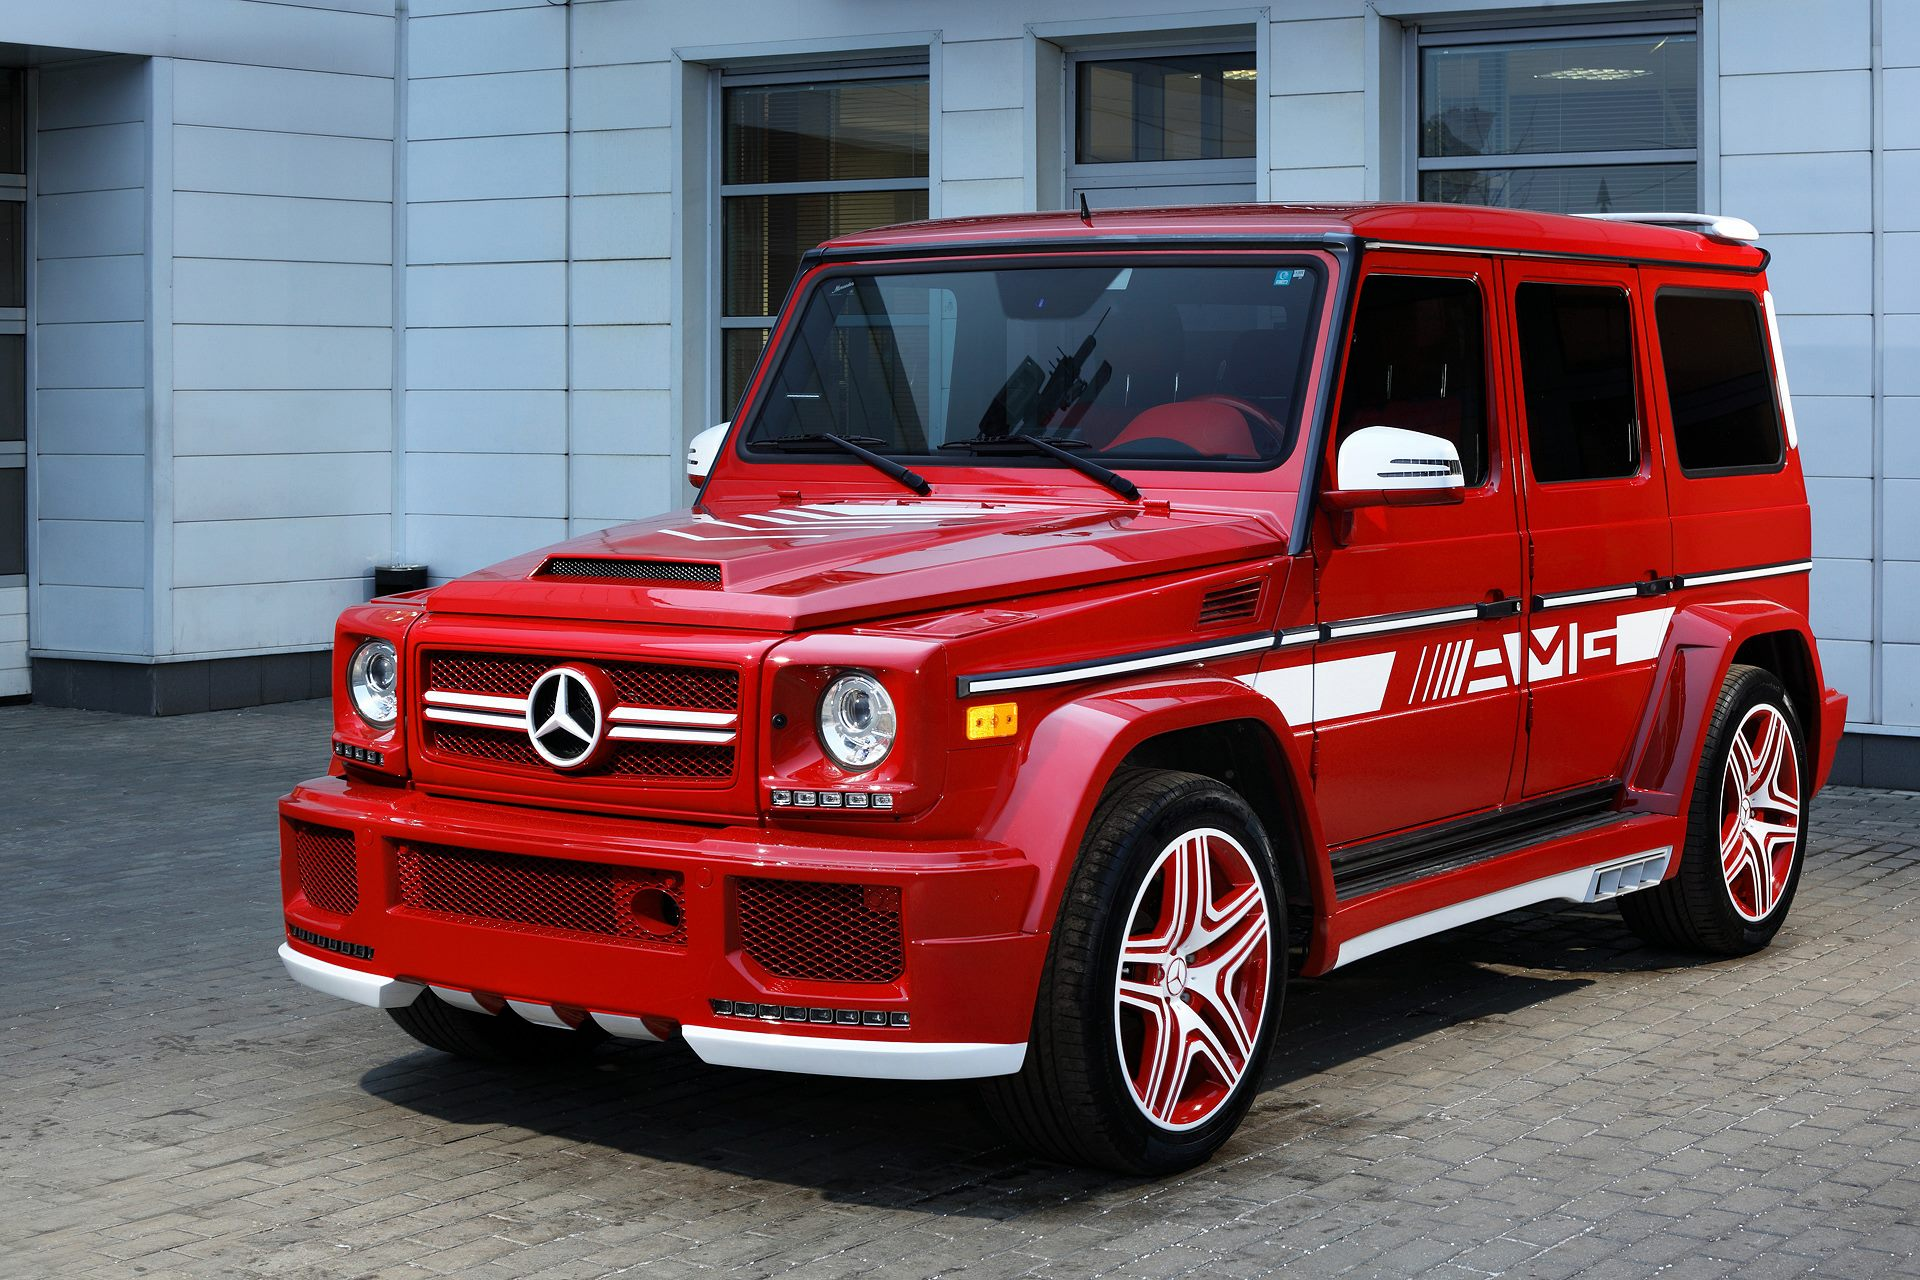 G63 Amg With Hamann Body Kit And Topcar Interior Is A Red Russian Rooster Autoevolution